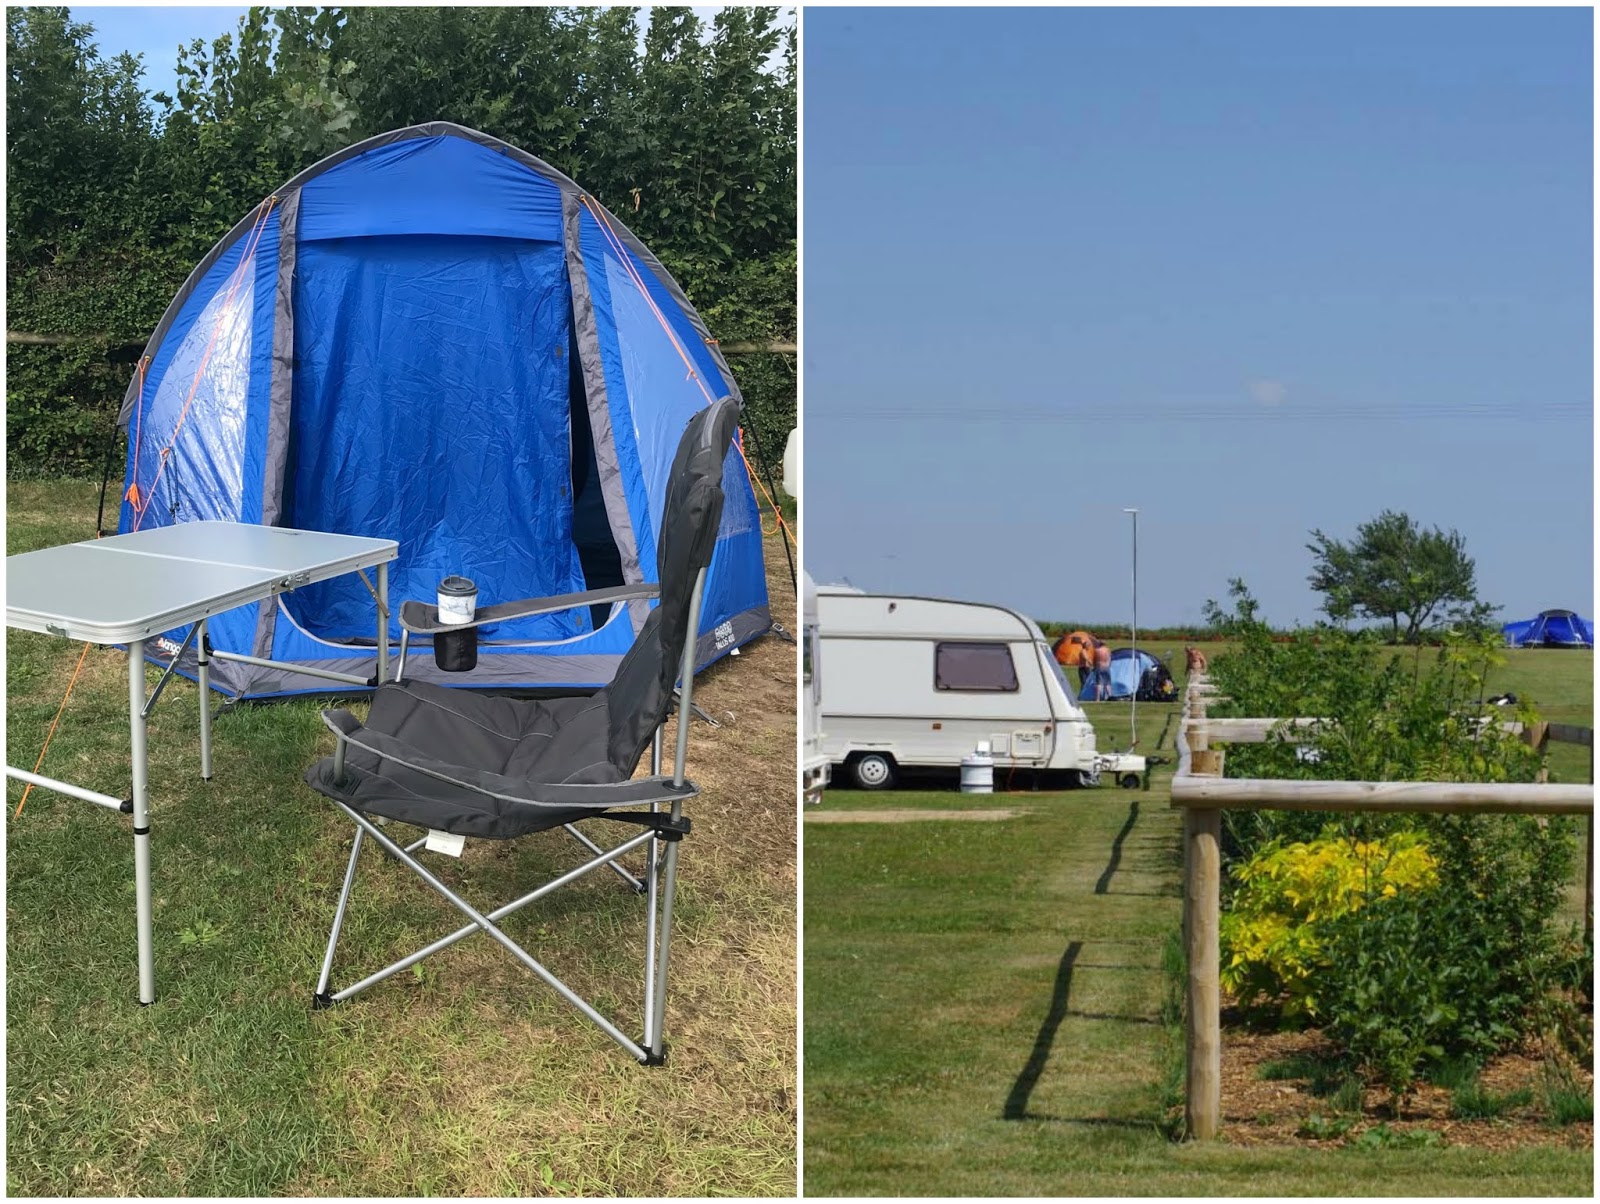 camping in Weymouth \ Bagwell Farm campsite \ tent